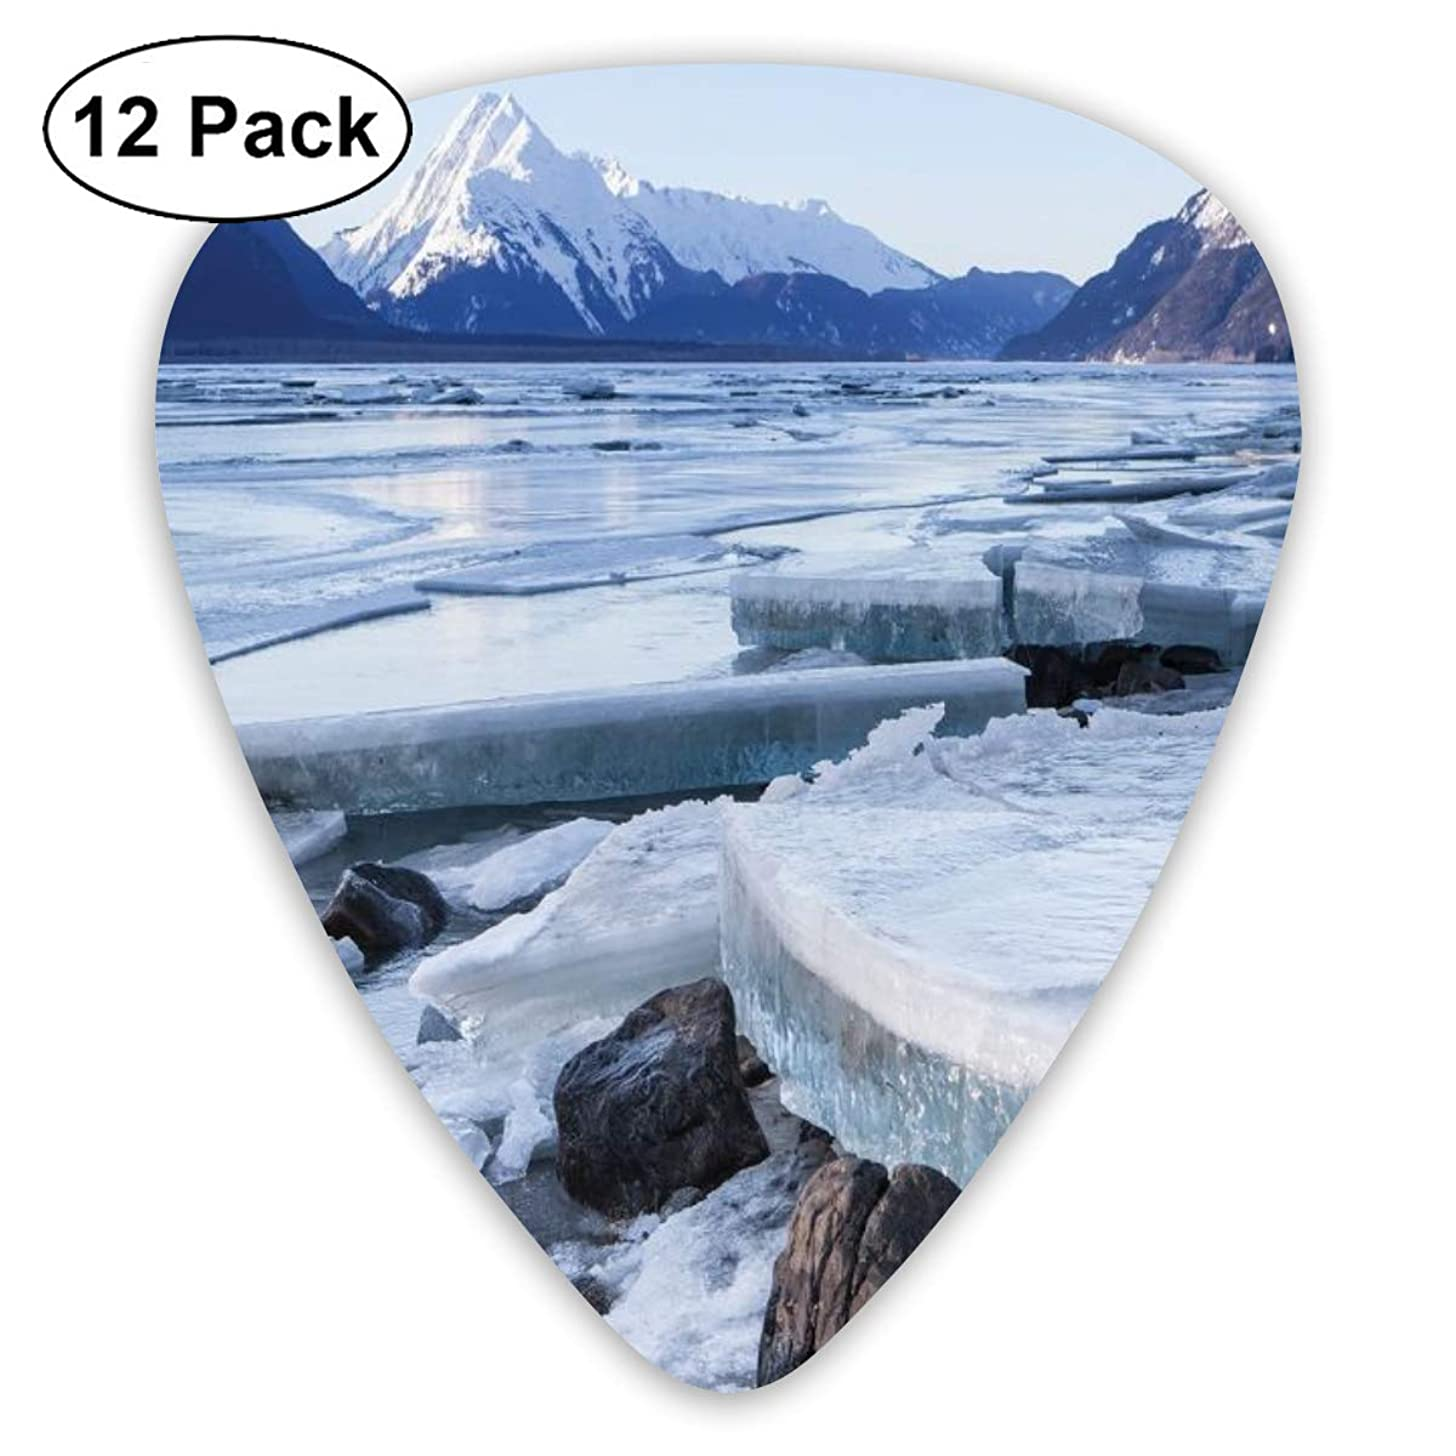 Guitar Picks - Abstract Art Colorful Designs,Ice Chunks On The Side Of Chilkat River In North America Winter Season,Unique Guitar Gift,For Bass Electric & Acoustic Guitars-12 Pack